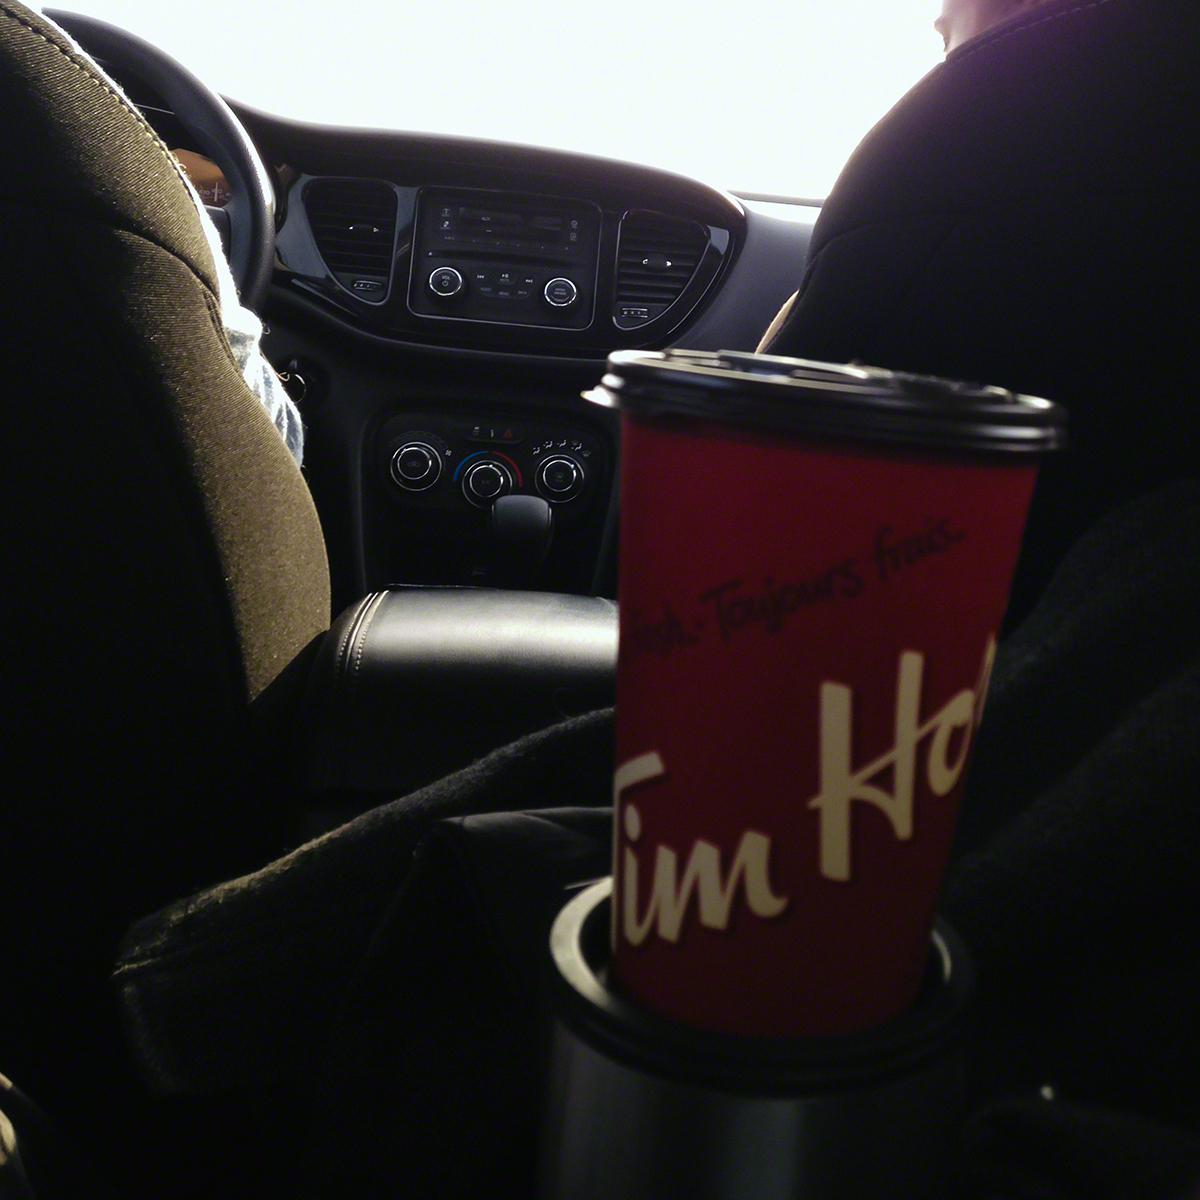 Timmies...of course